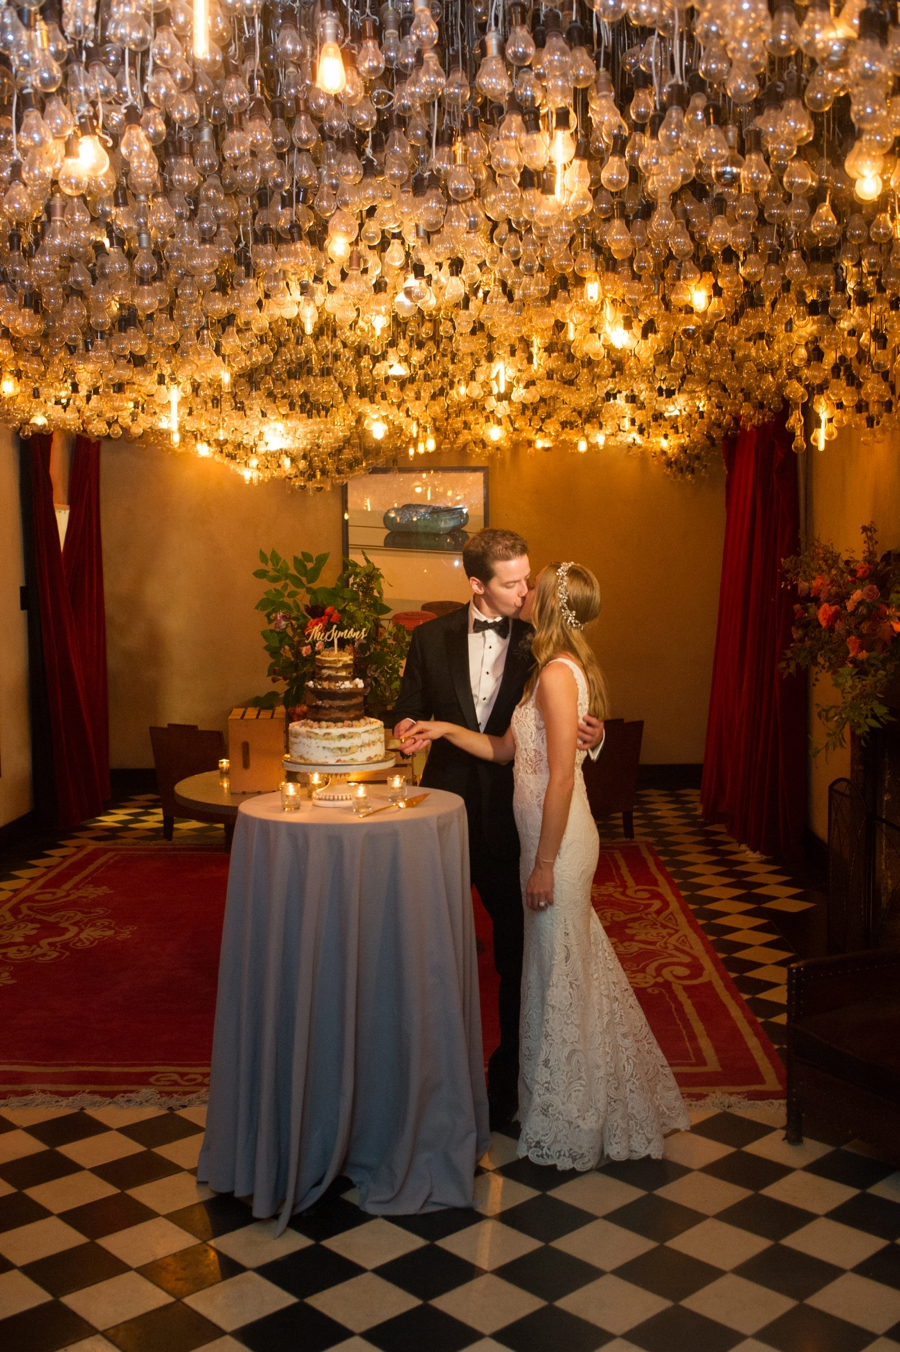 Gramercy_Park_Hotel_NYC_Wedding_MJ_036.jpg